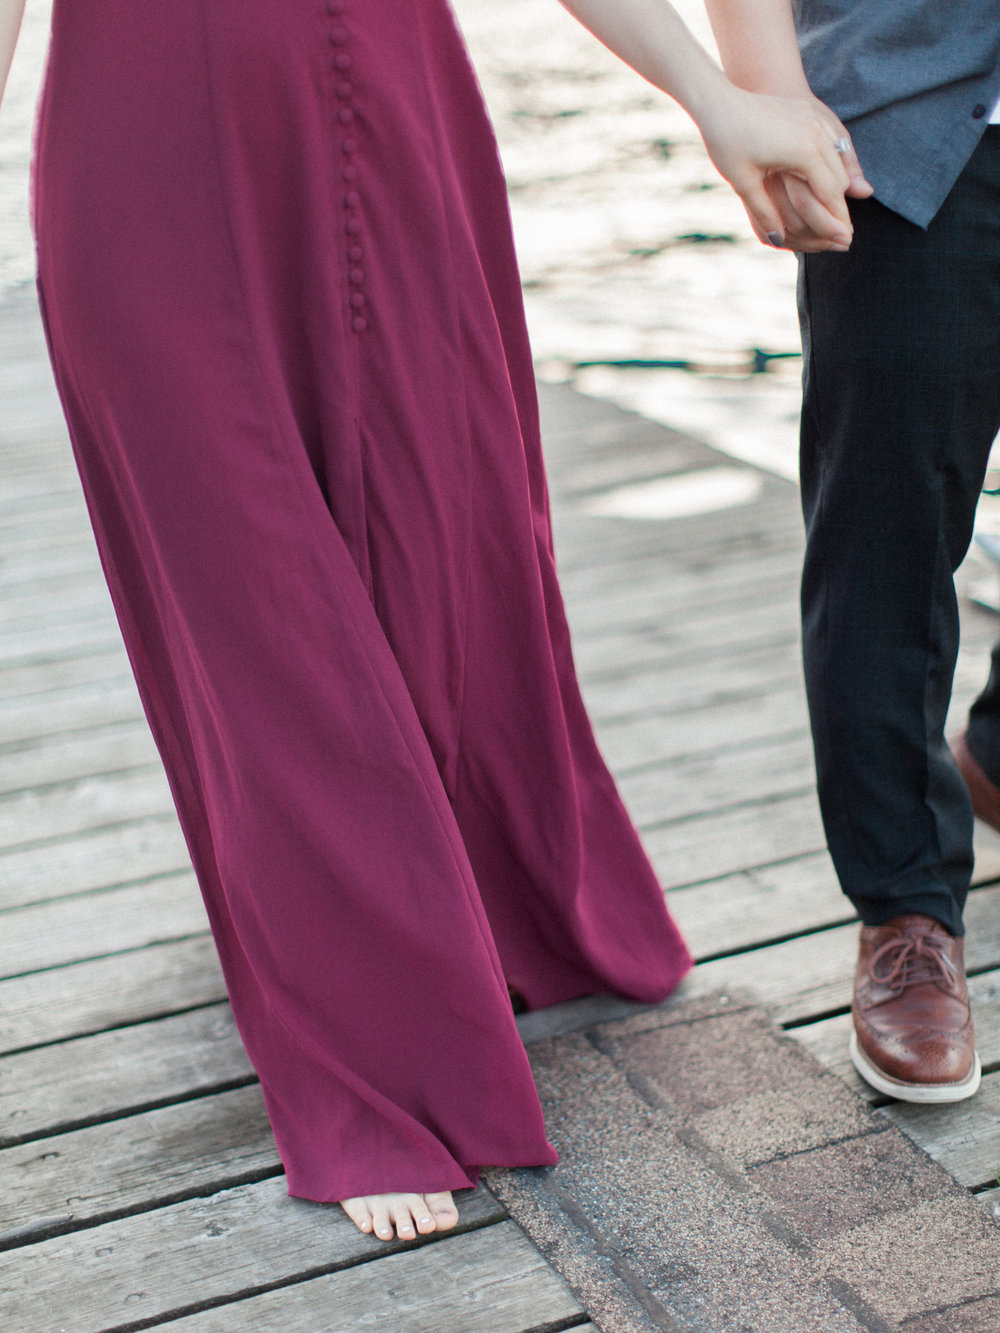 20170528Maple_Ridge_Engagement_Mary_Marco_Prewedding-24.jpg